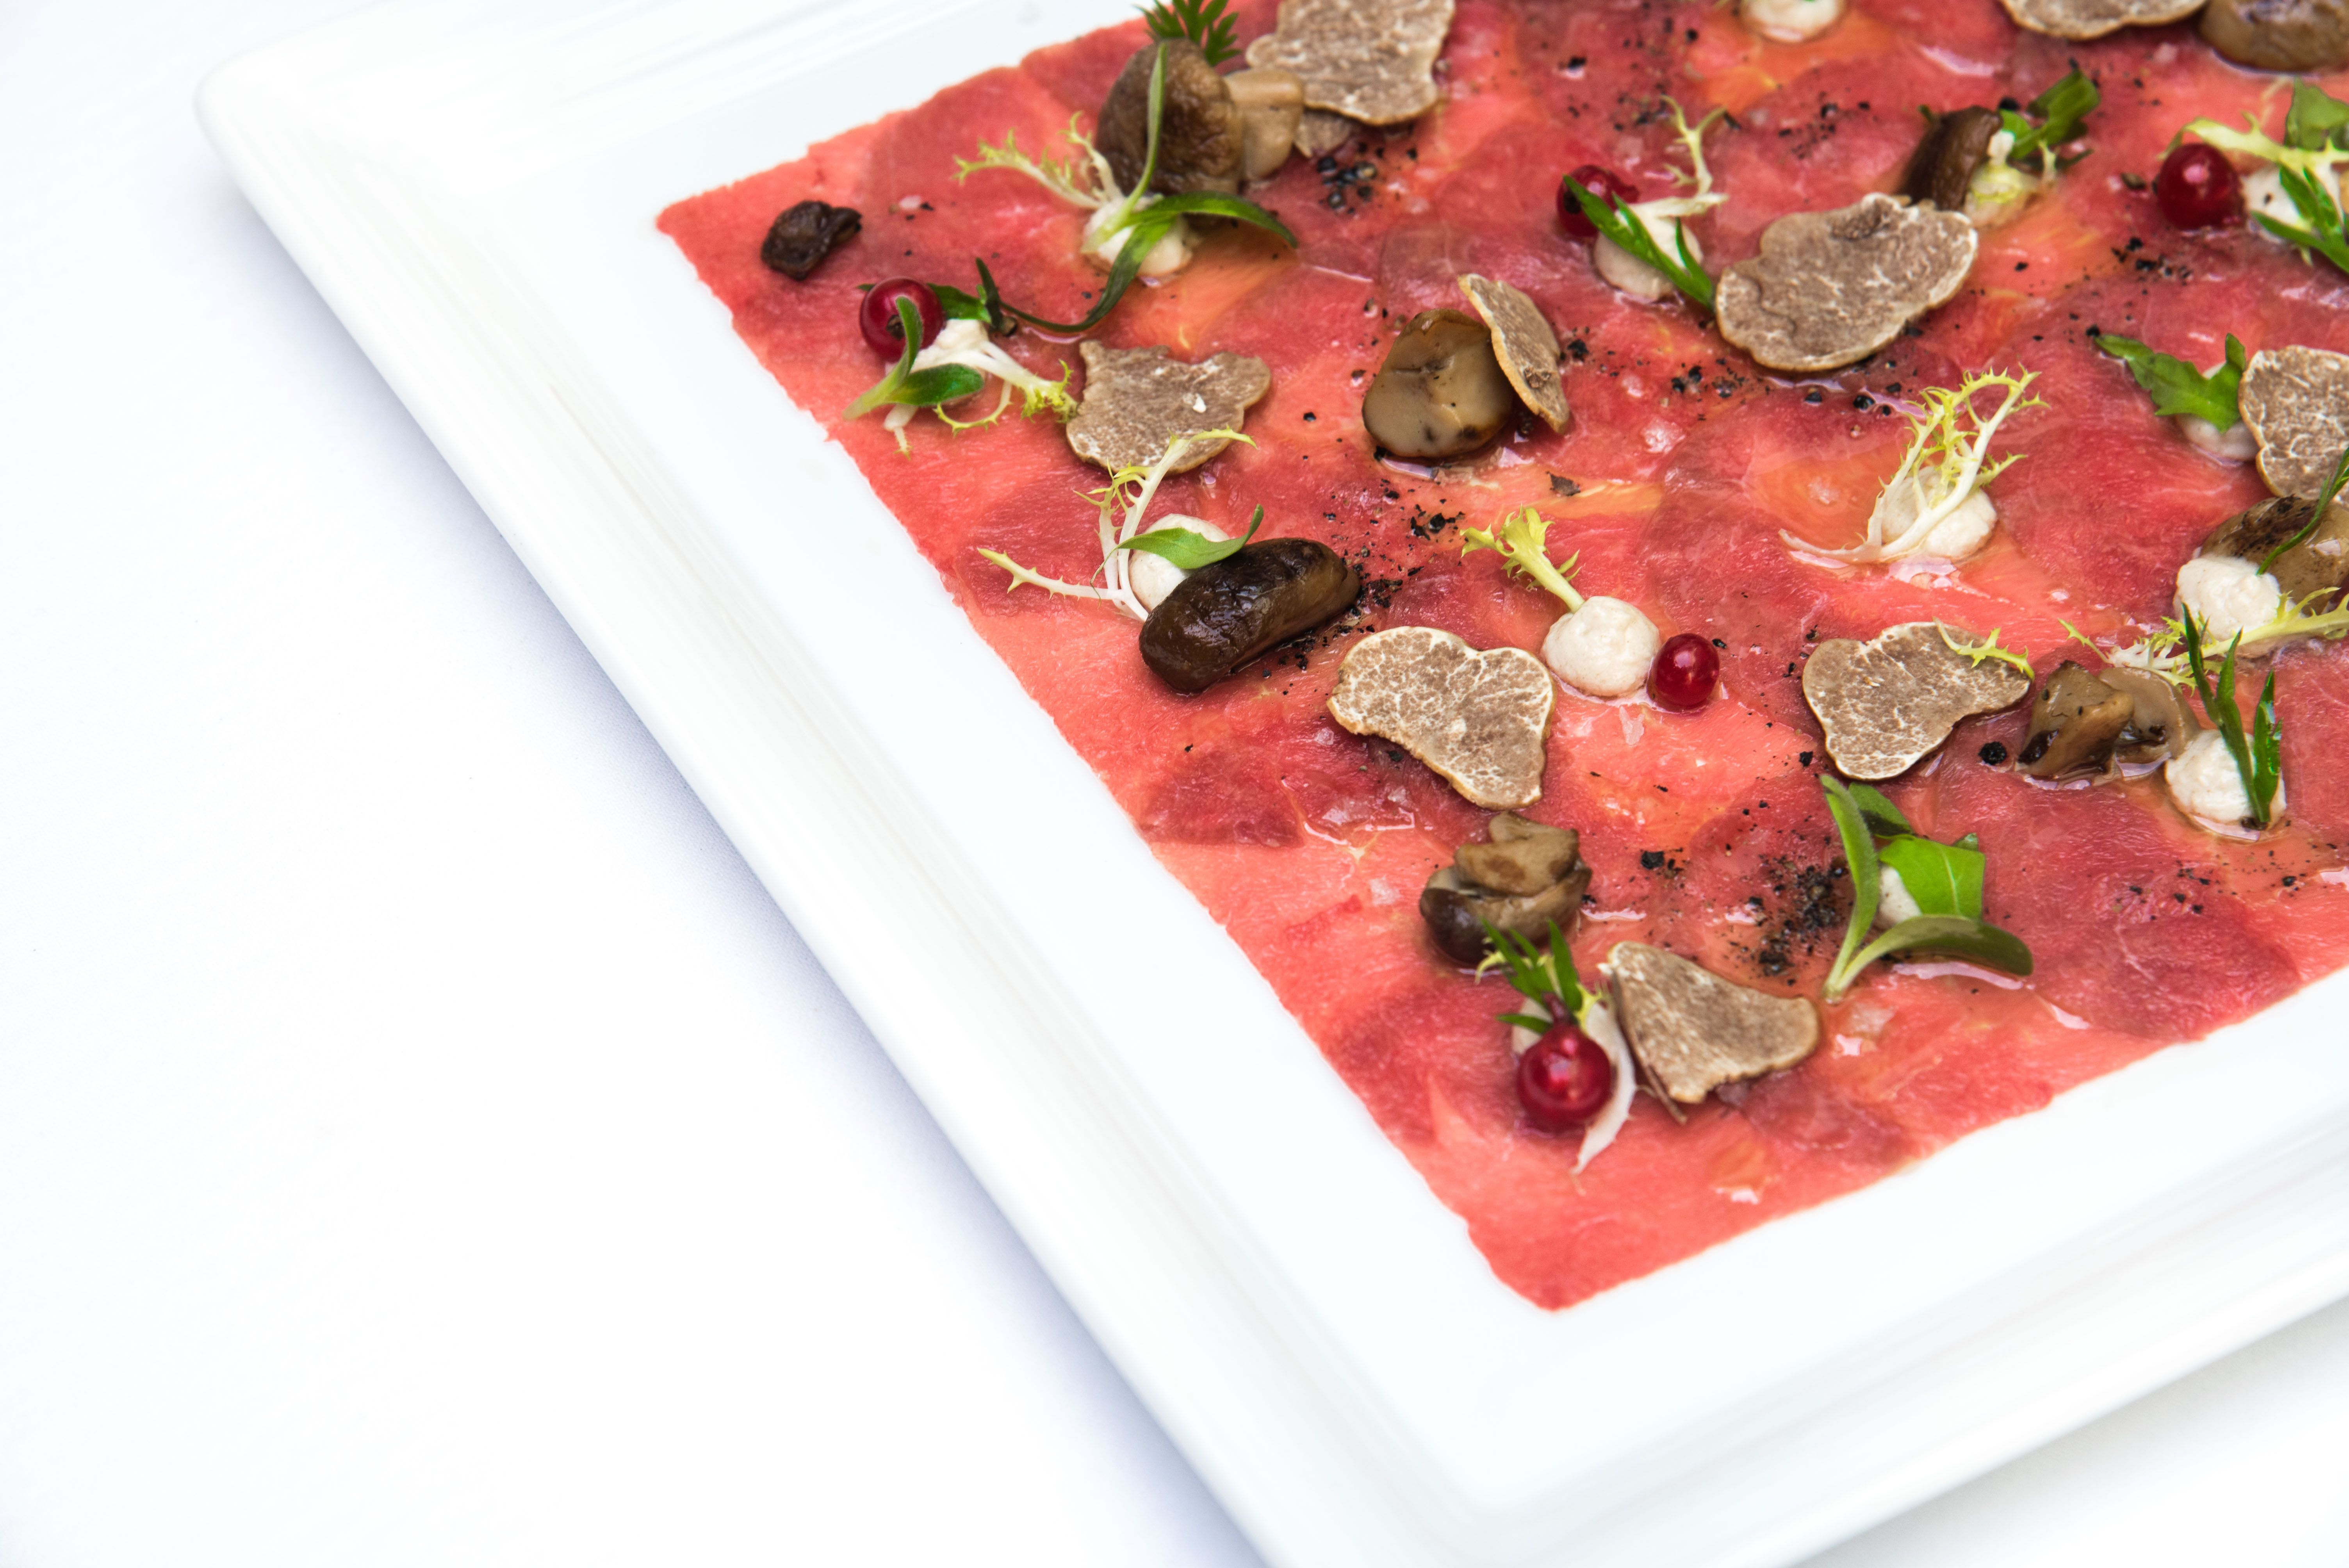 Beef Carpaccio with White Truffle by Senso Ristorante & Bar, Singapore #beef #finedine #plating #singapore #restaurant